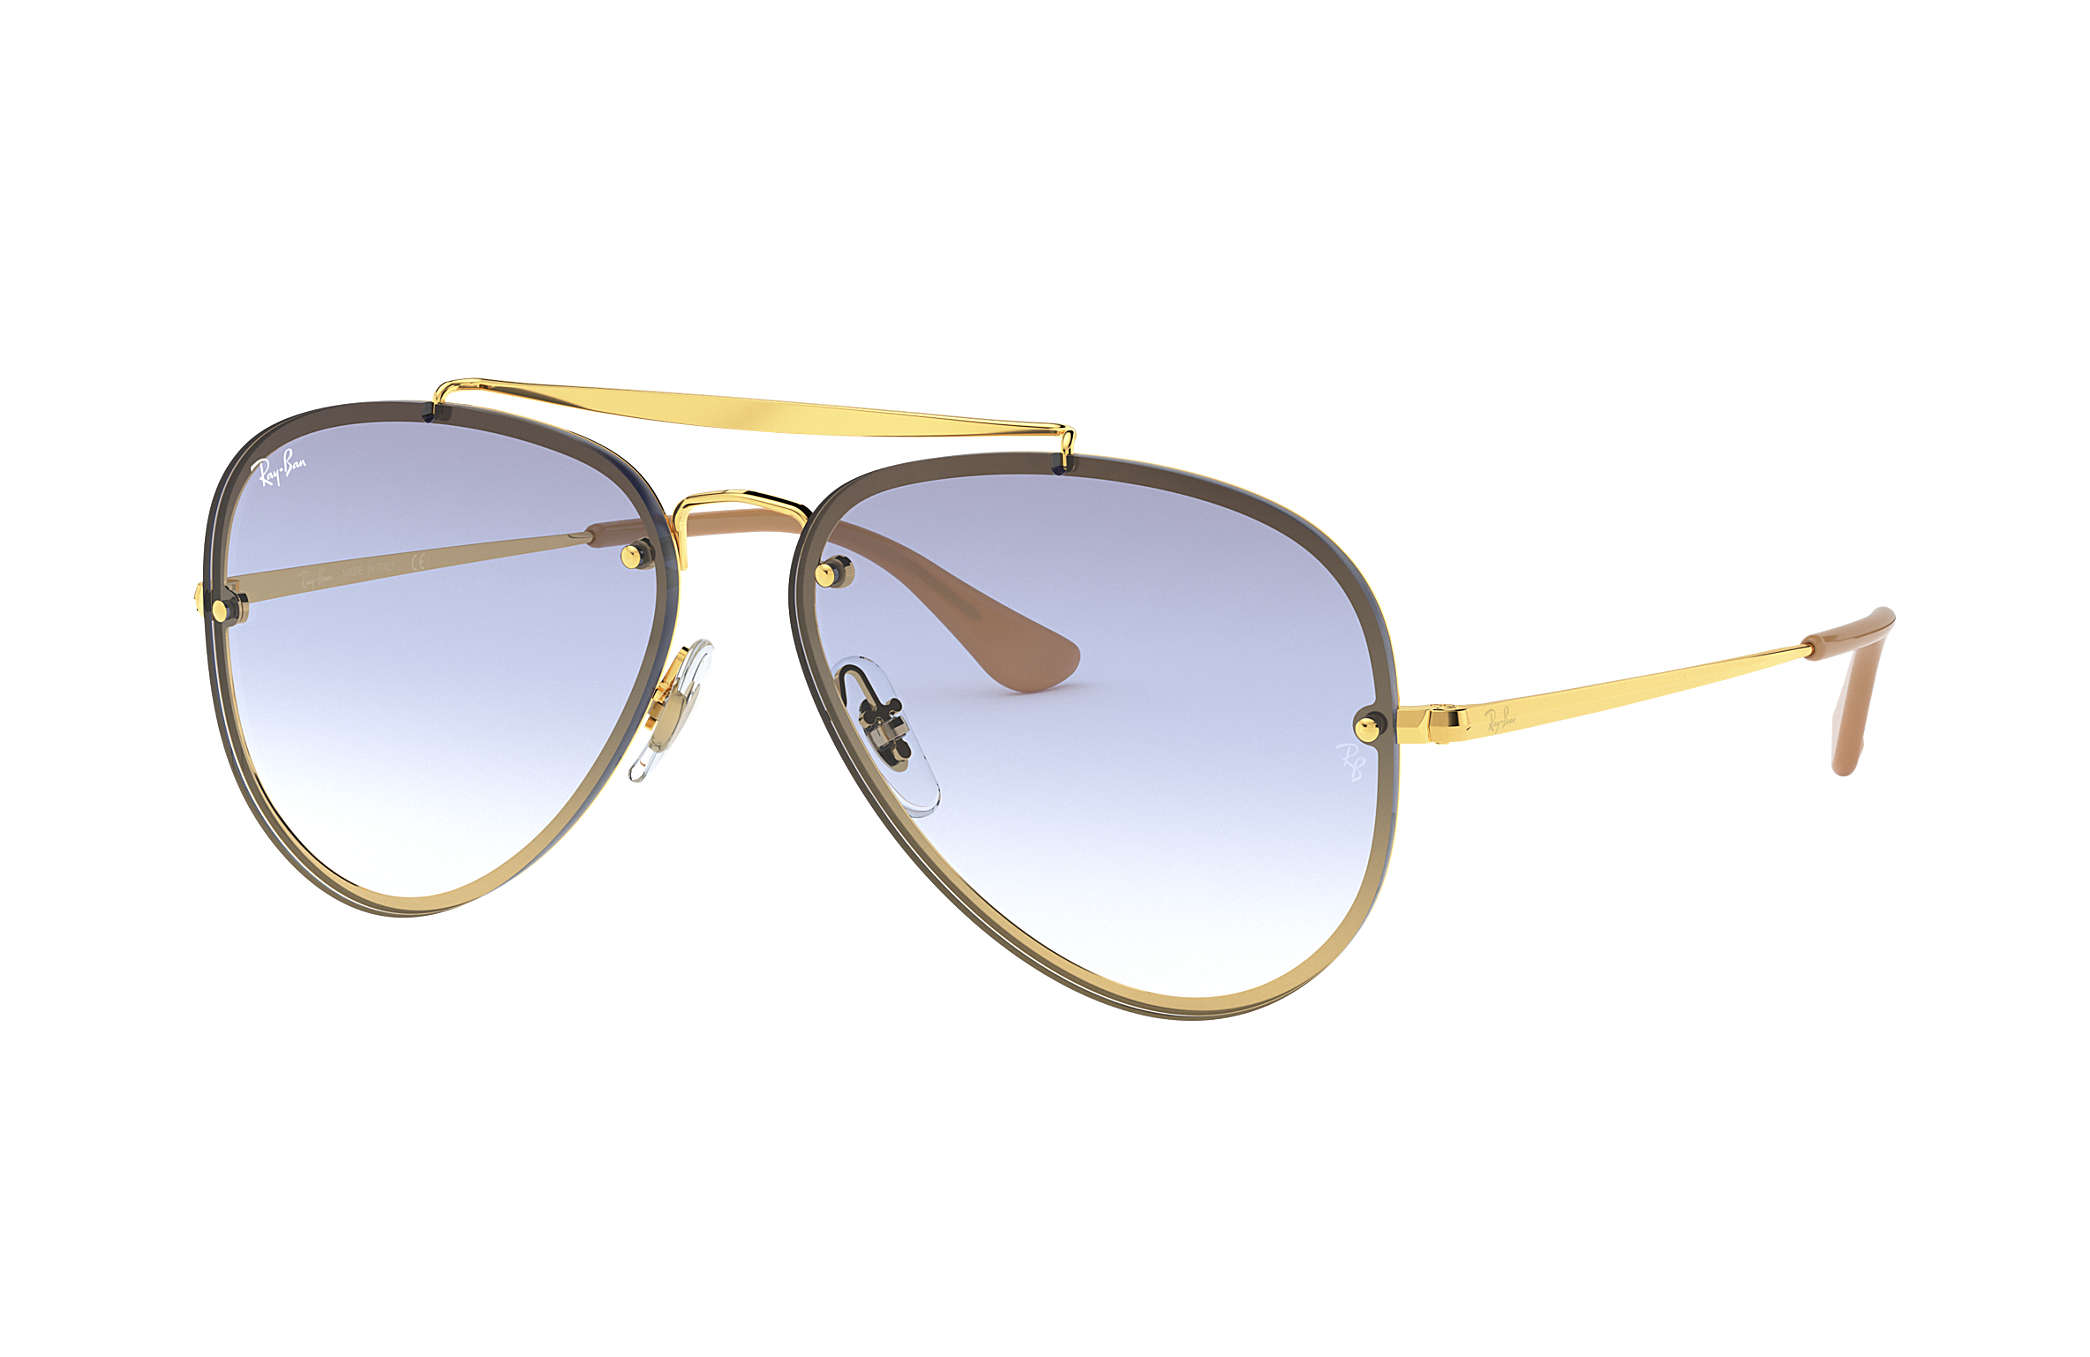 Ray-Ban Blaze Aviator RB3584N Gold - Steel - Light Blue Lenses ... e8c2a48cf2